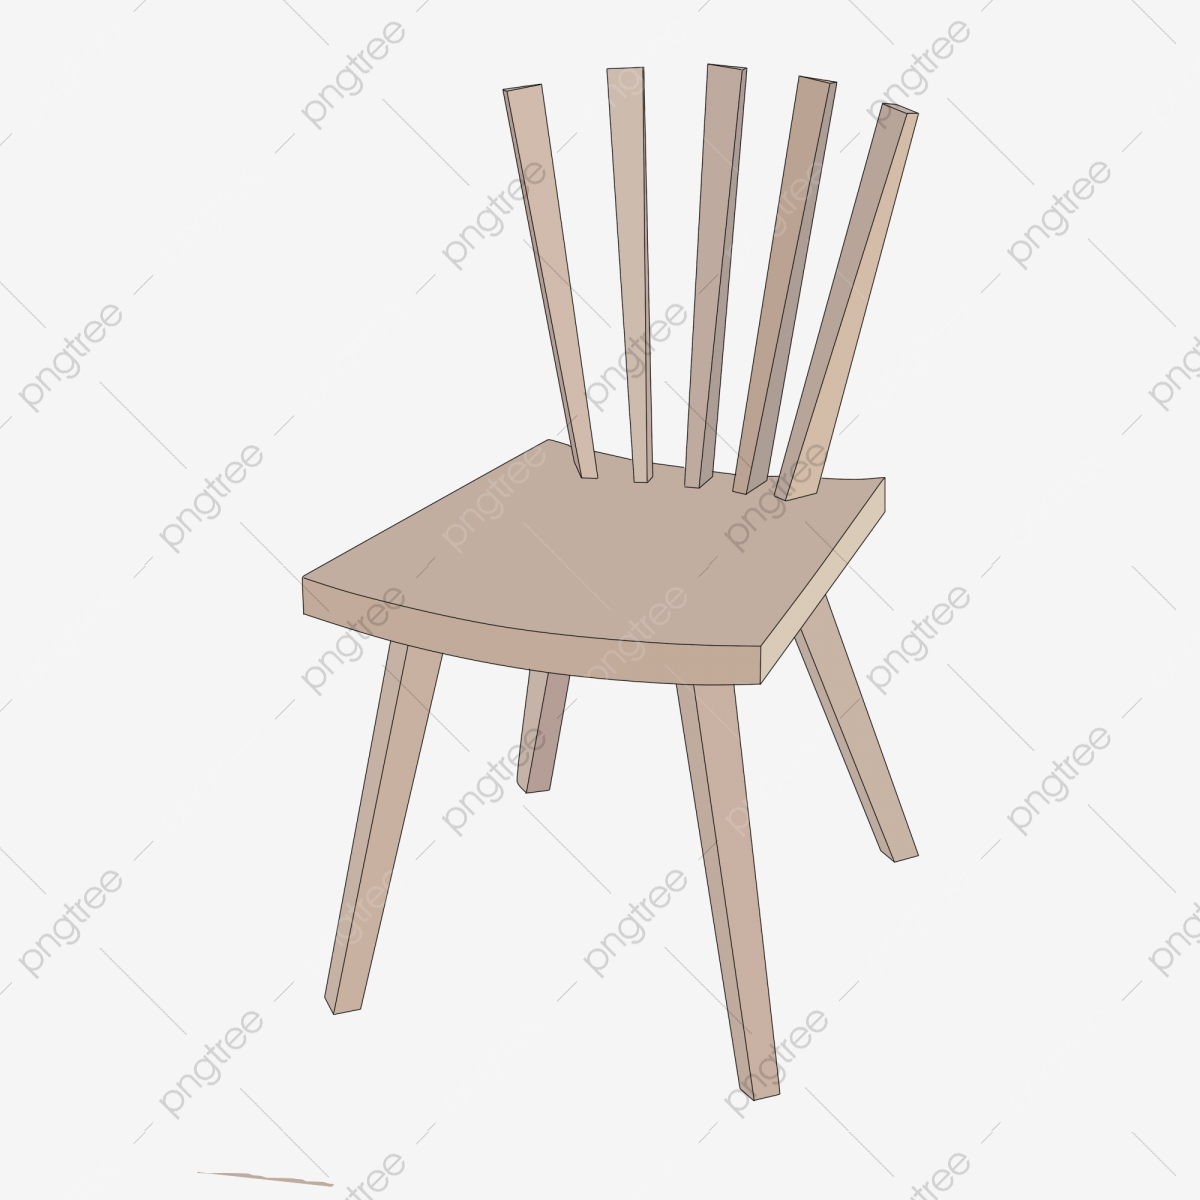 Superb Creative Wooden Chair Illustration Creative Chair Backrest Dailytribune Chair Design For Home Dailytribuneorg